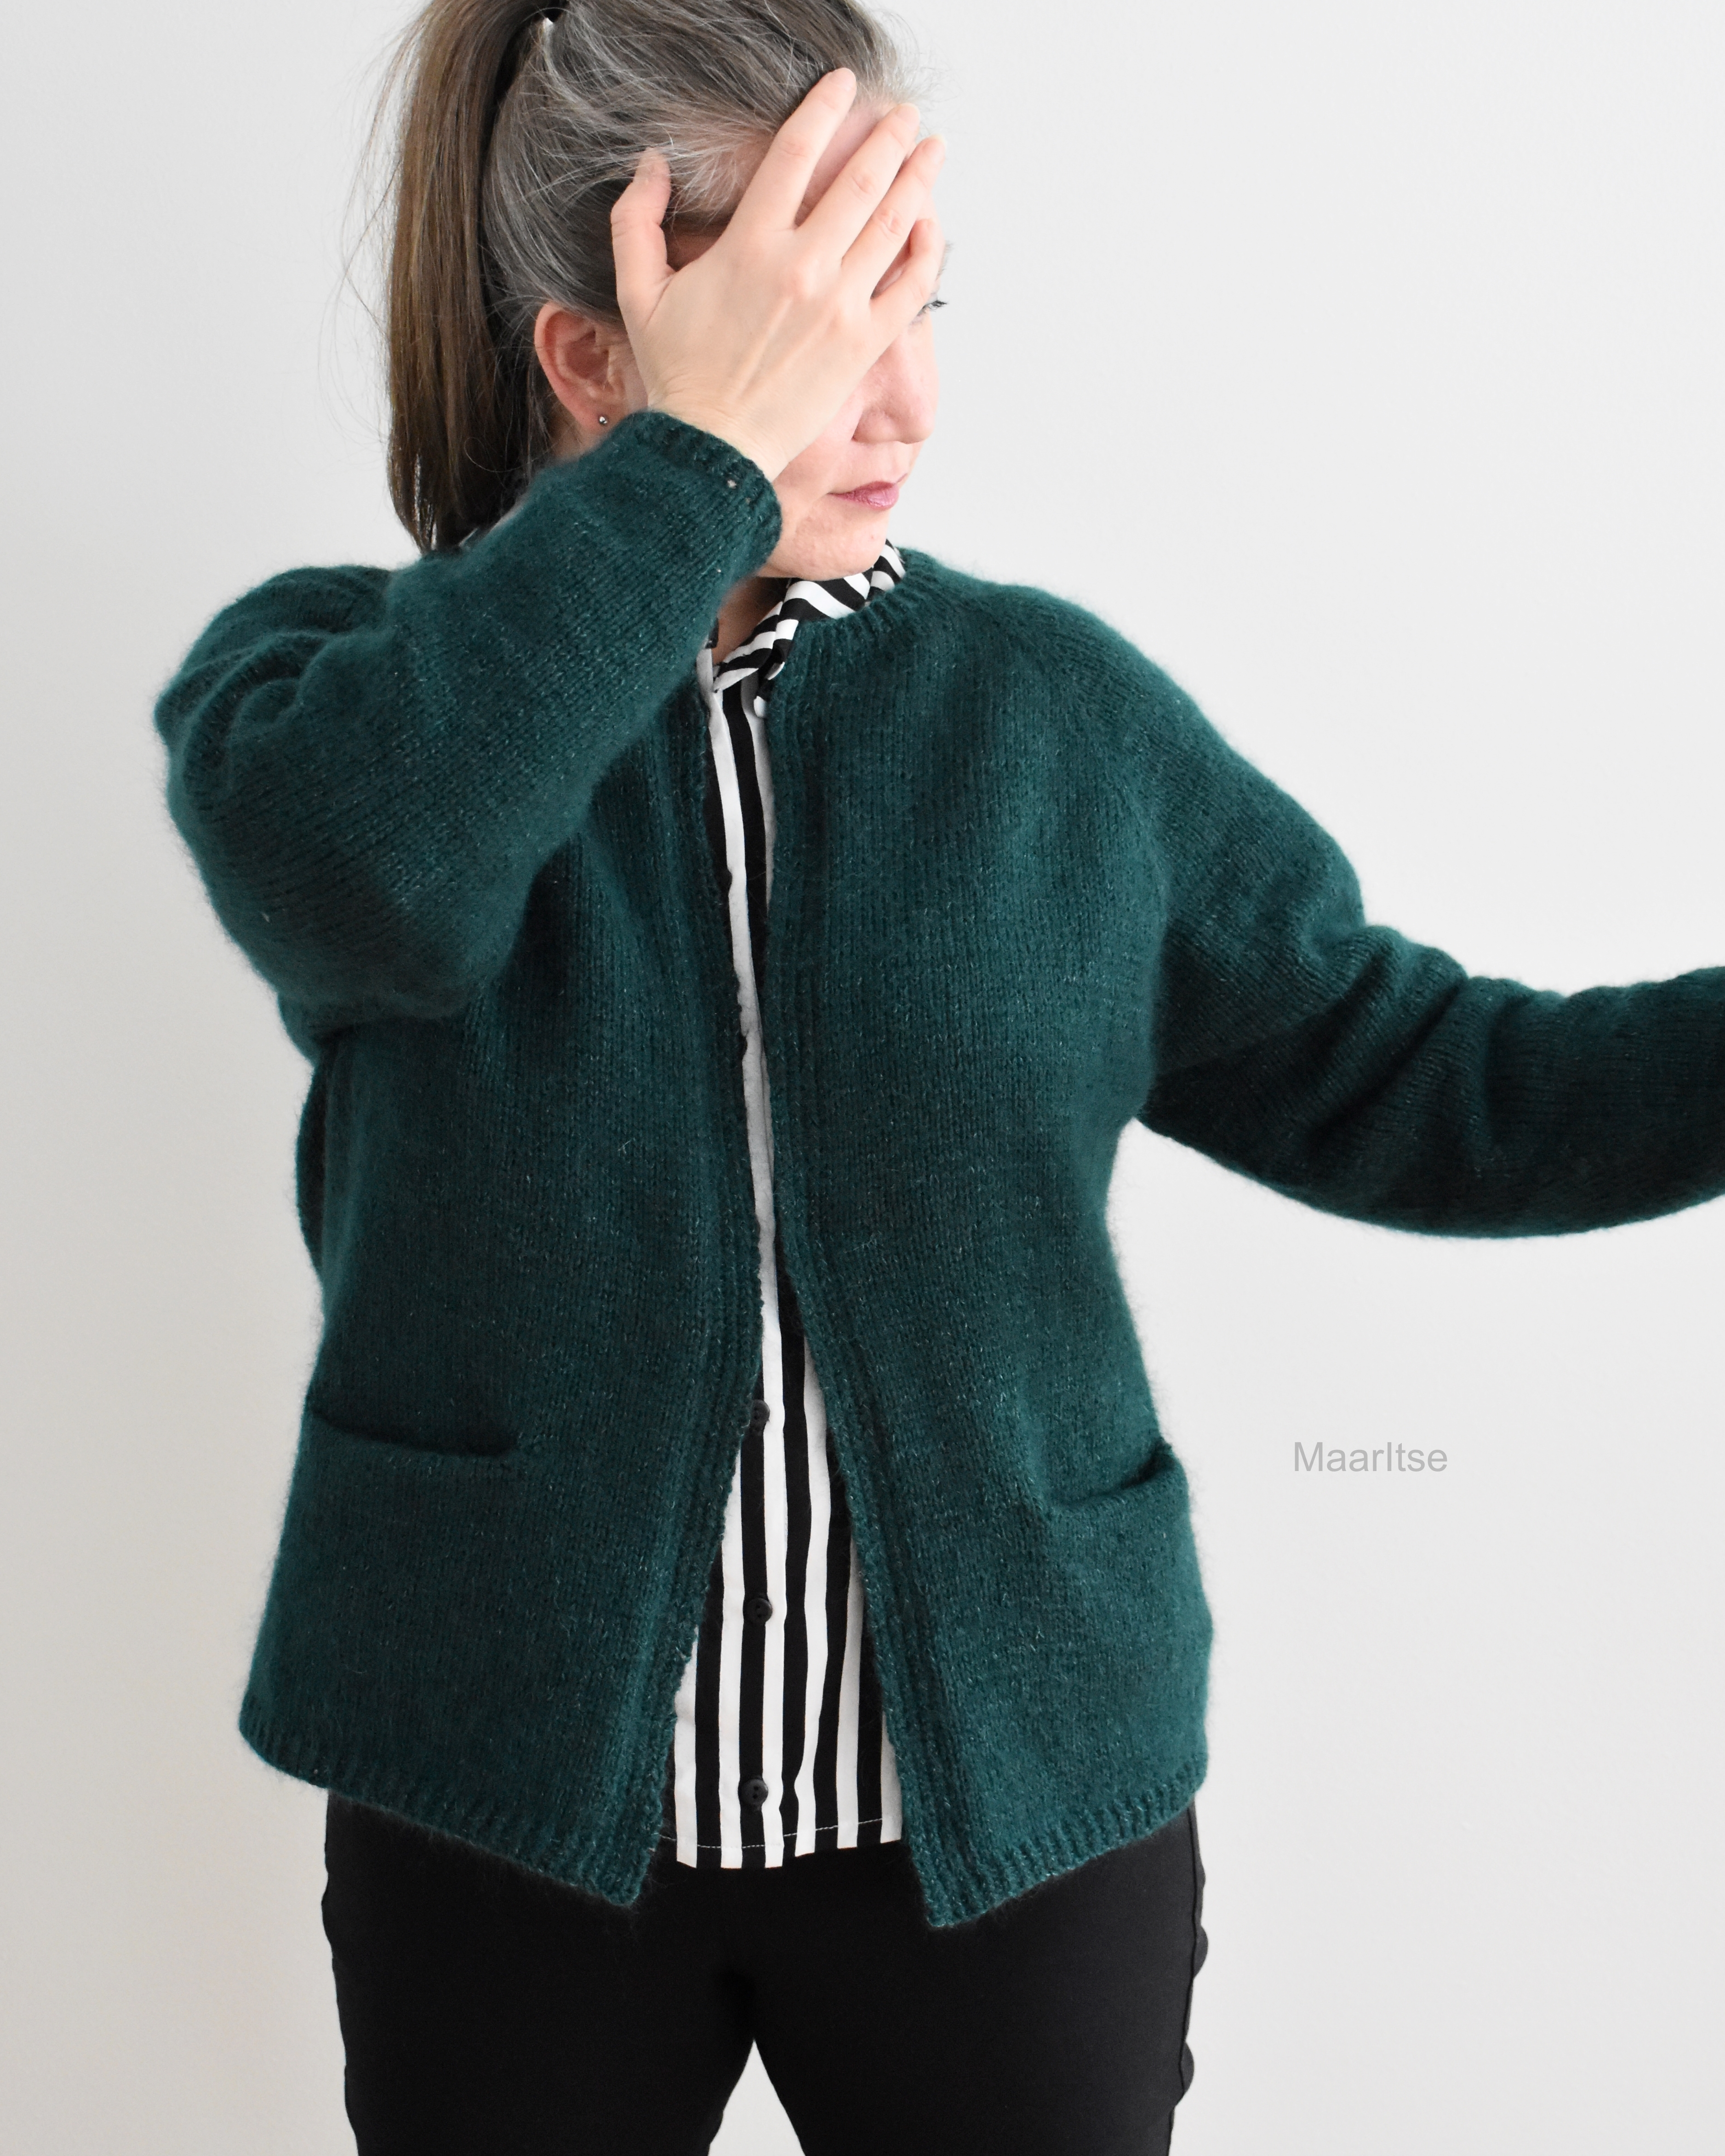 maaritse_darkgreen_mohaircardigan_with_pockets